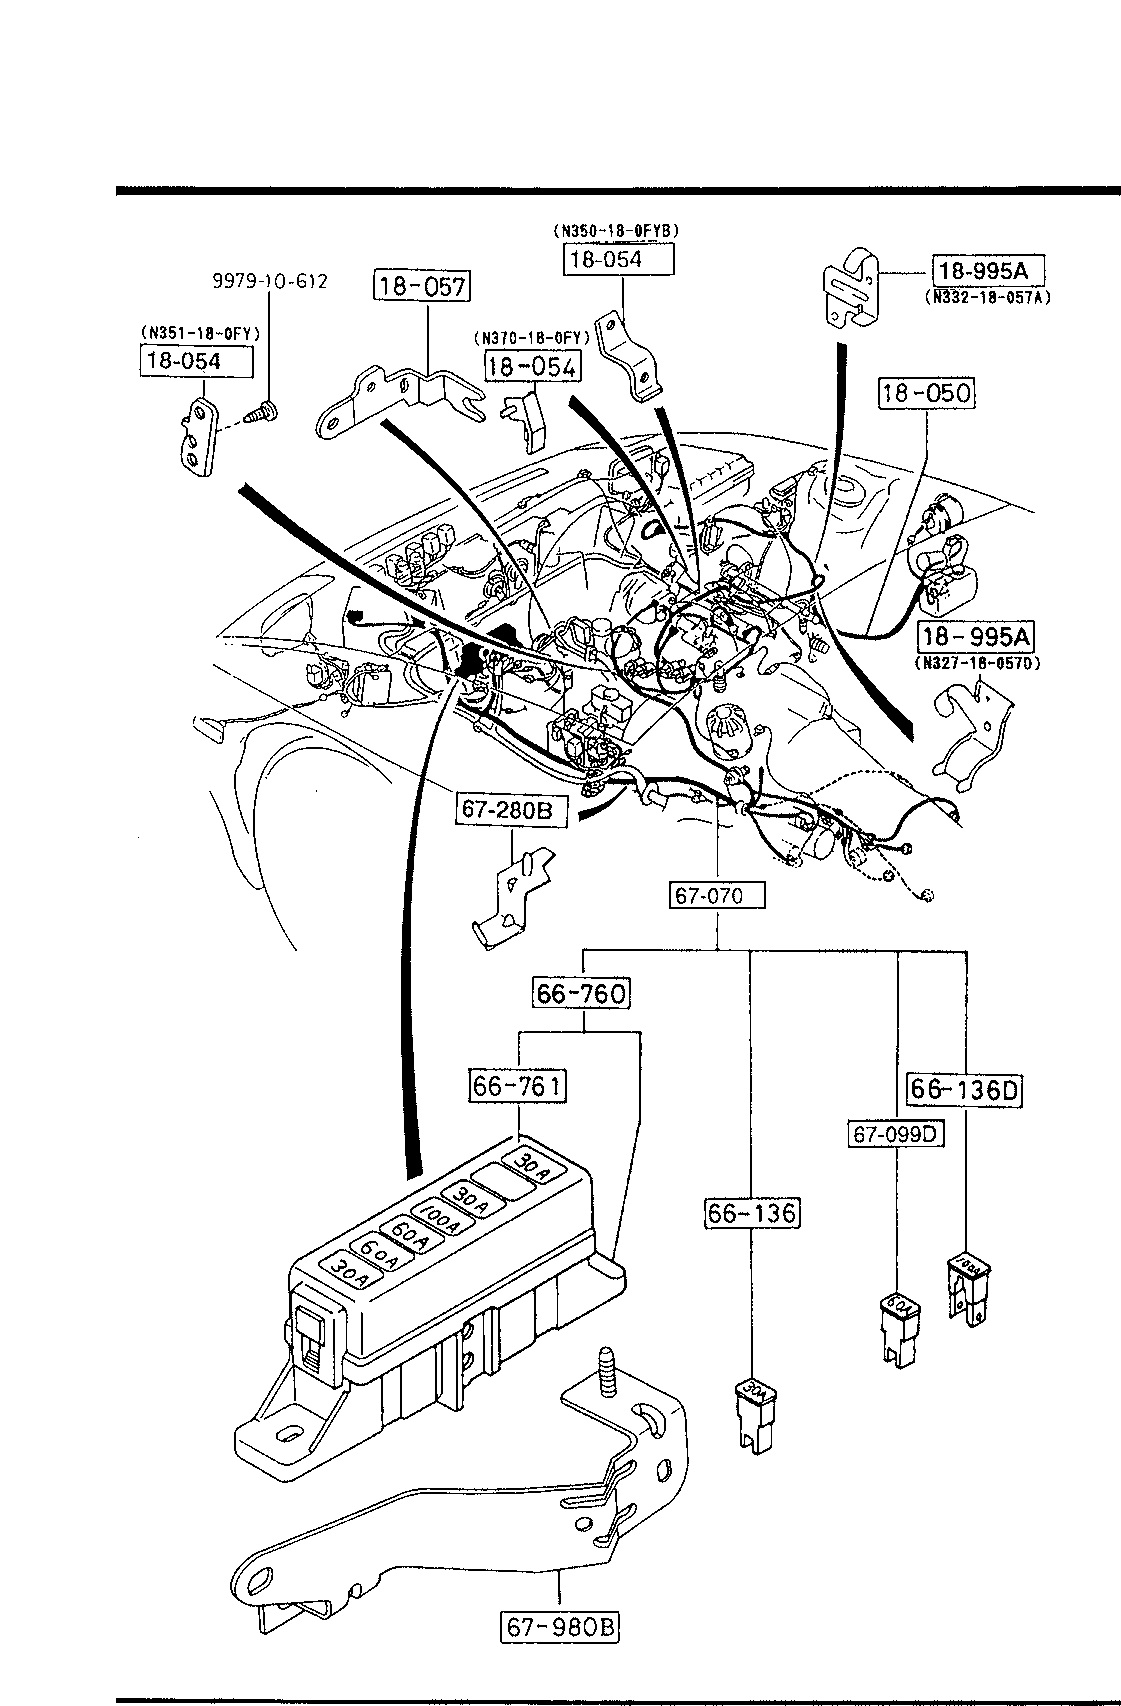 1991 Rx7 Wiring Diagram